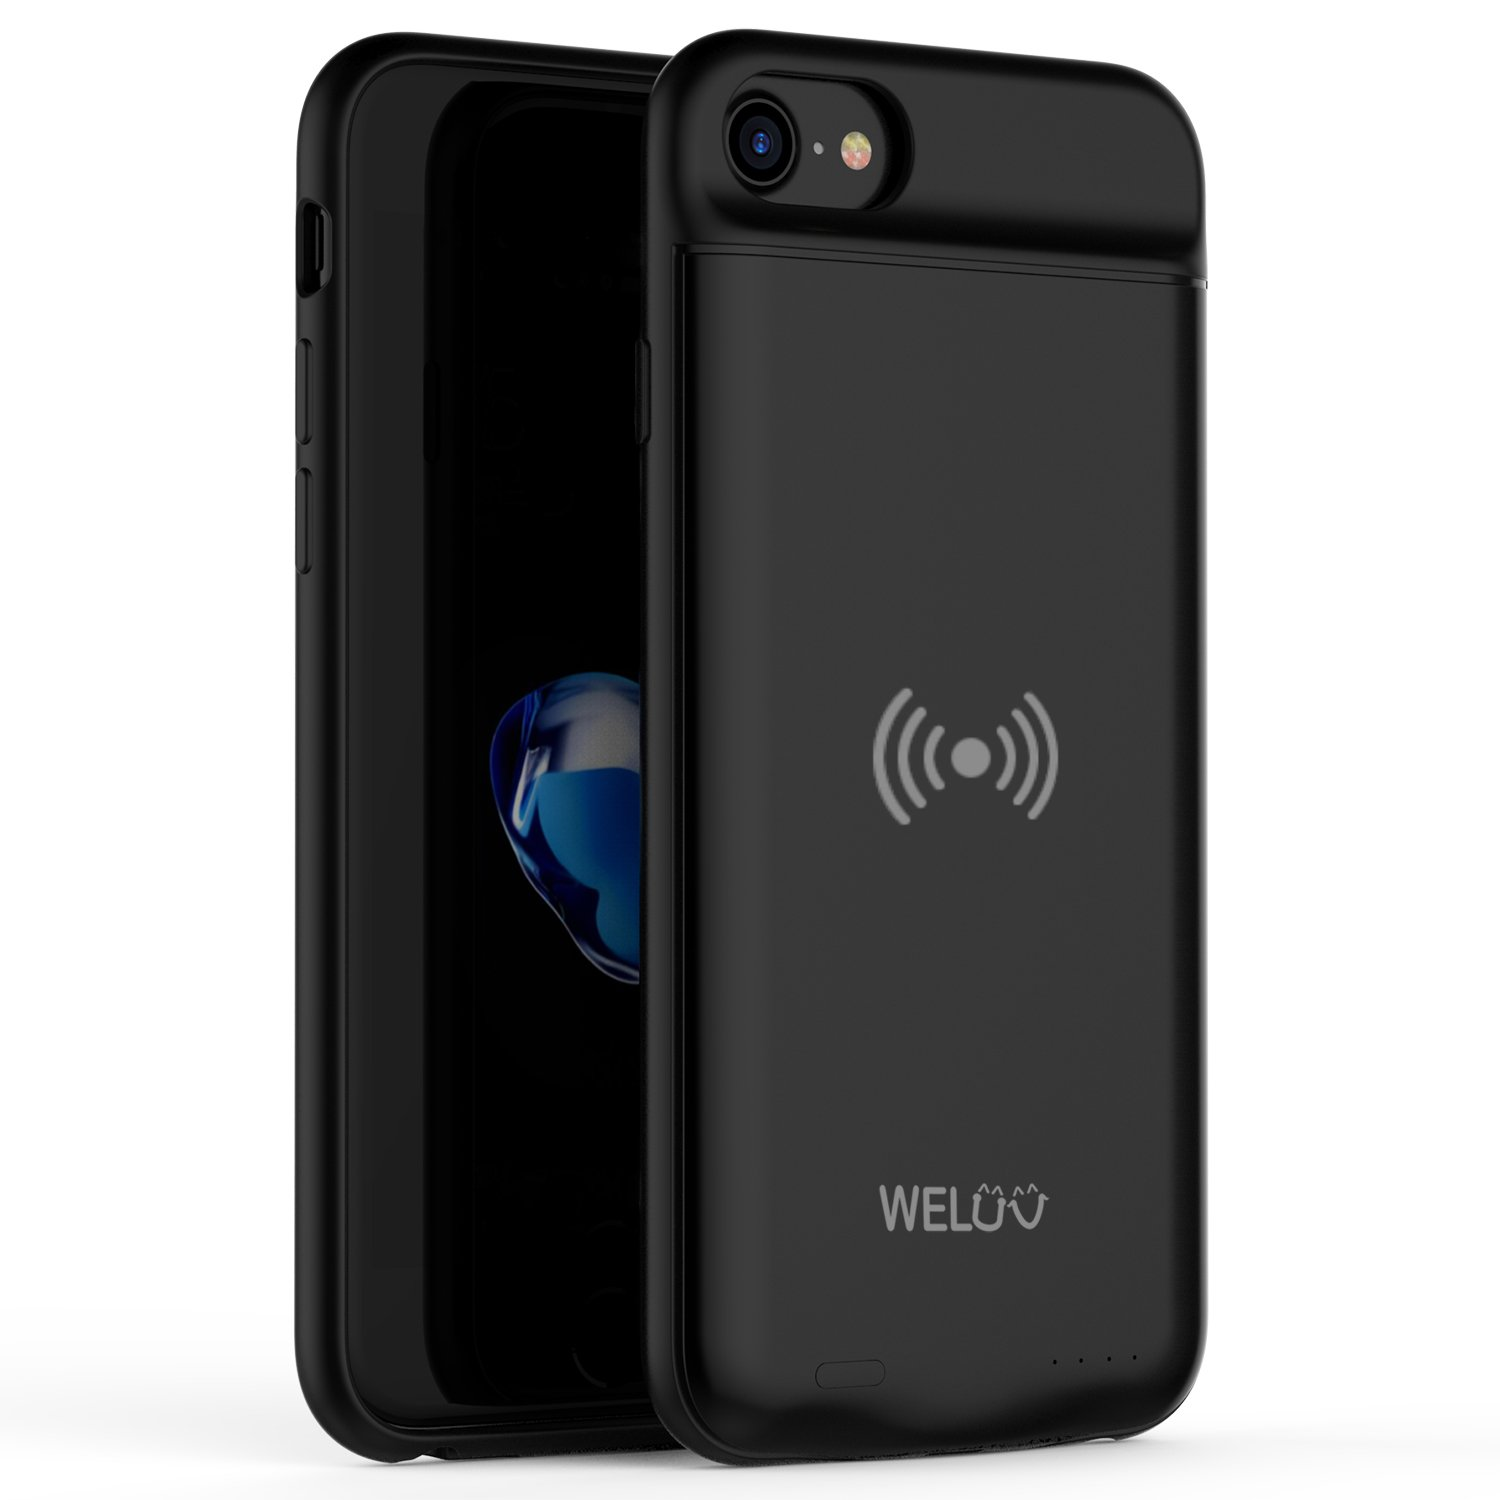 """WELUV for iPhone 8 Plus 7 Plus 6s Plus 6 Plus Wireless Battery Case 4000mAh Ultra Slim Rechargeable Cover QI Standard Wireless Charging Extended Backup Protective Shell 5.5"""""""